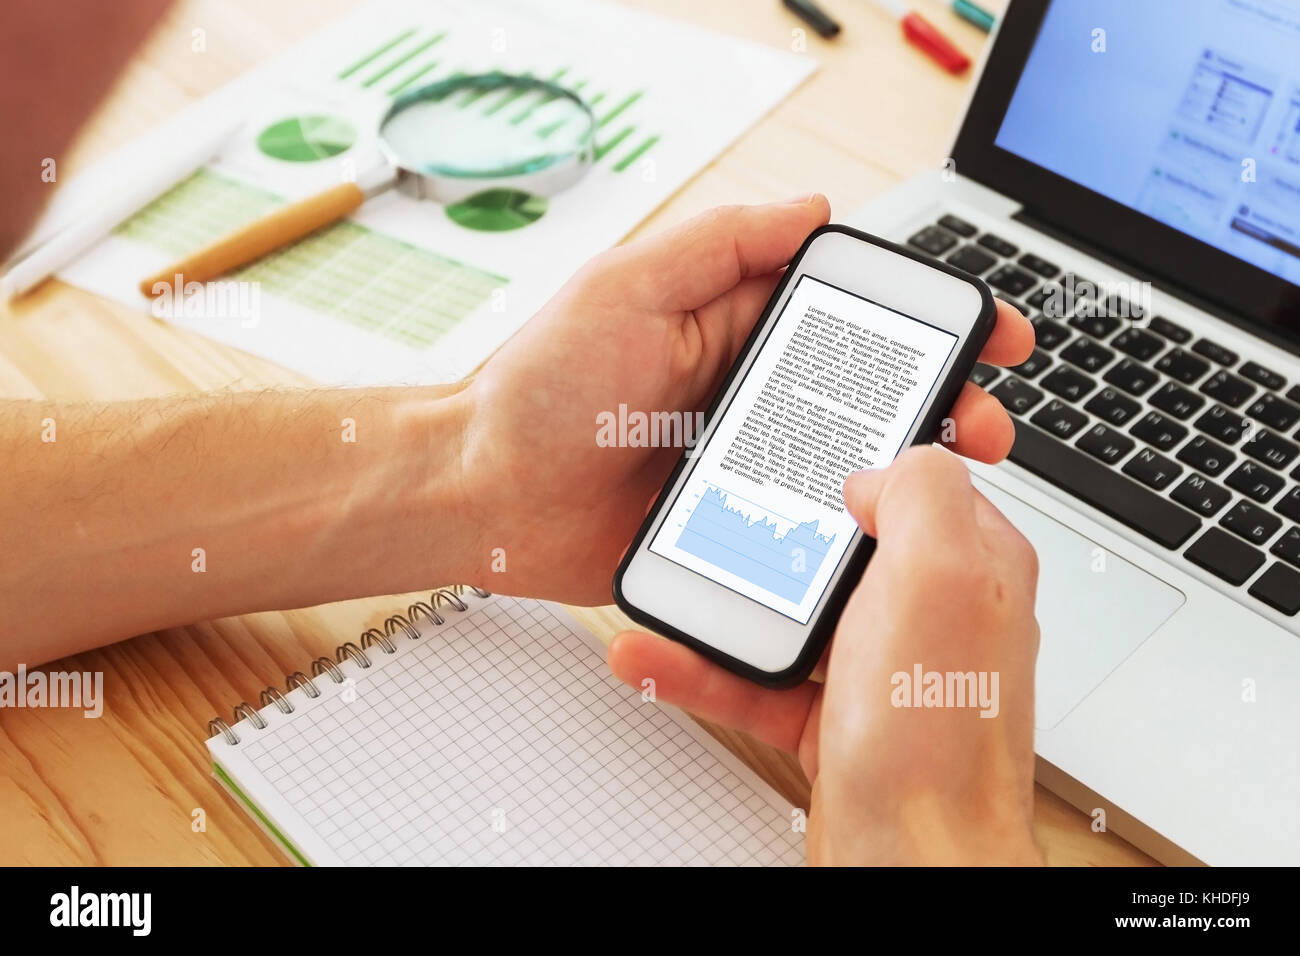 business analytics and financial data, businessman reading annual report on the screen of smartphone - Stock Image